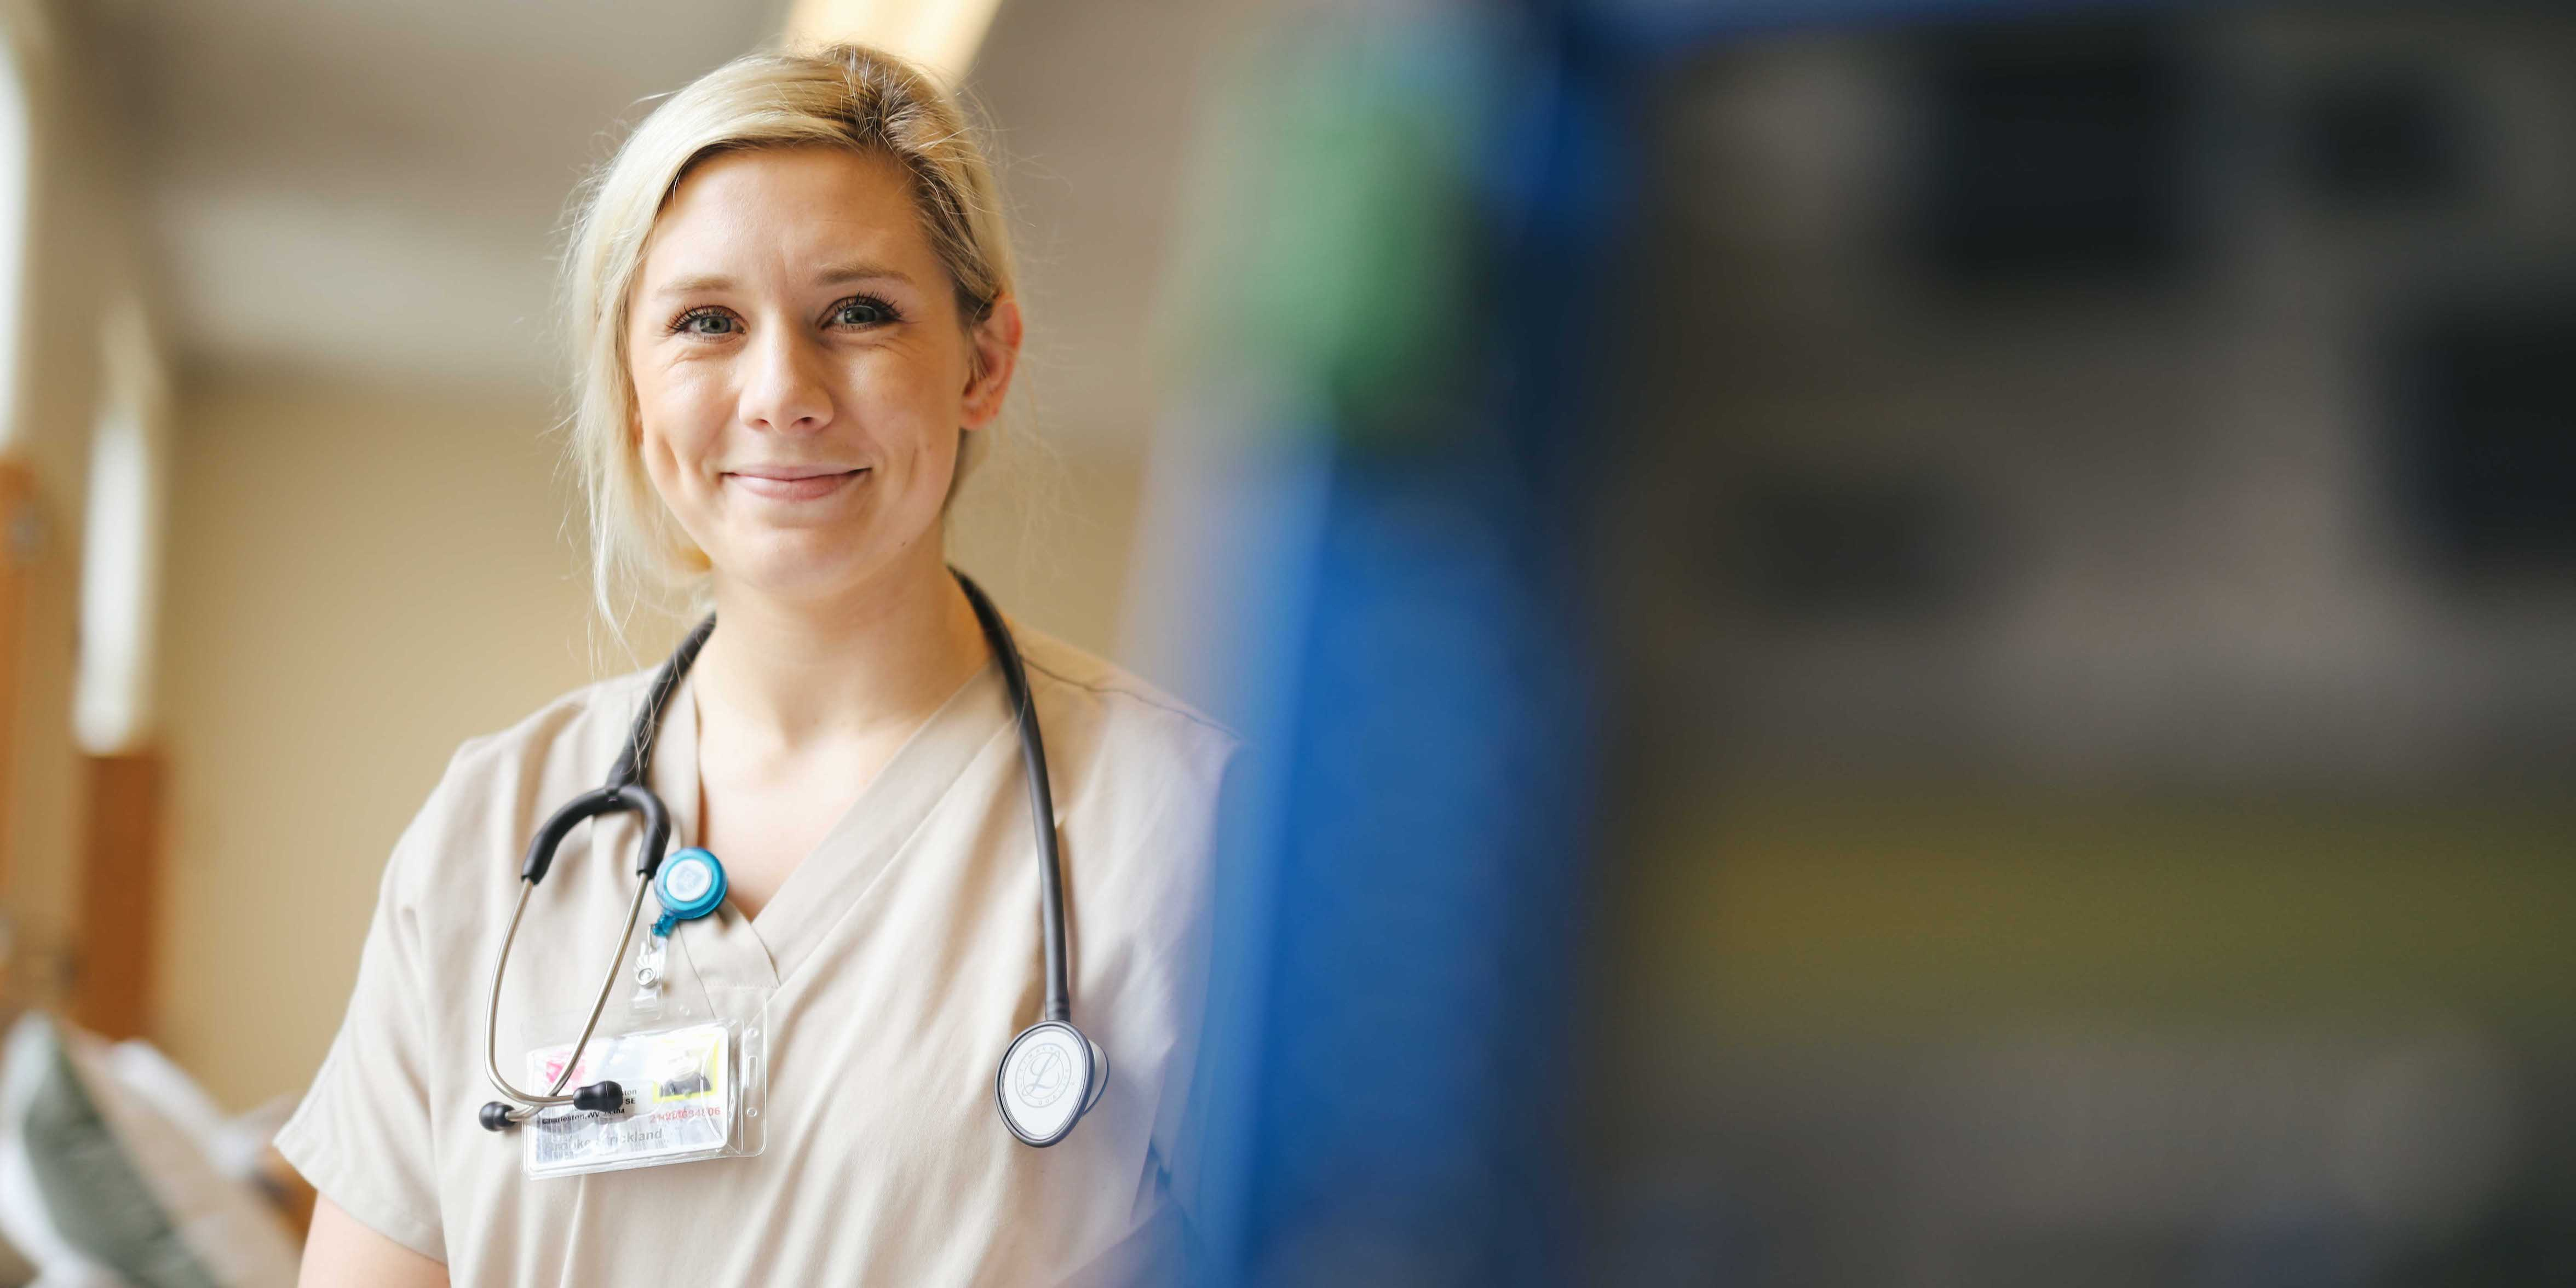 female nursing student smiling in scrubs with stethoscope